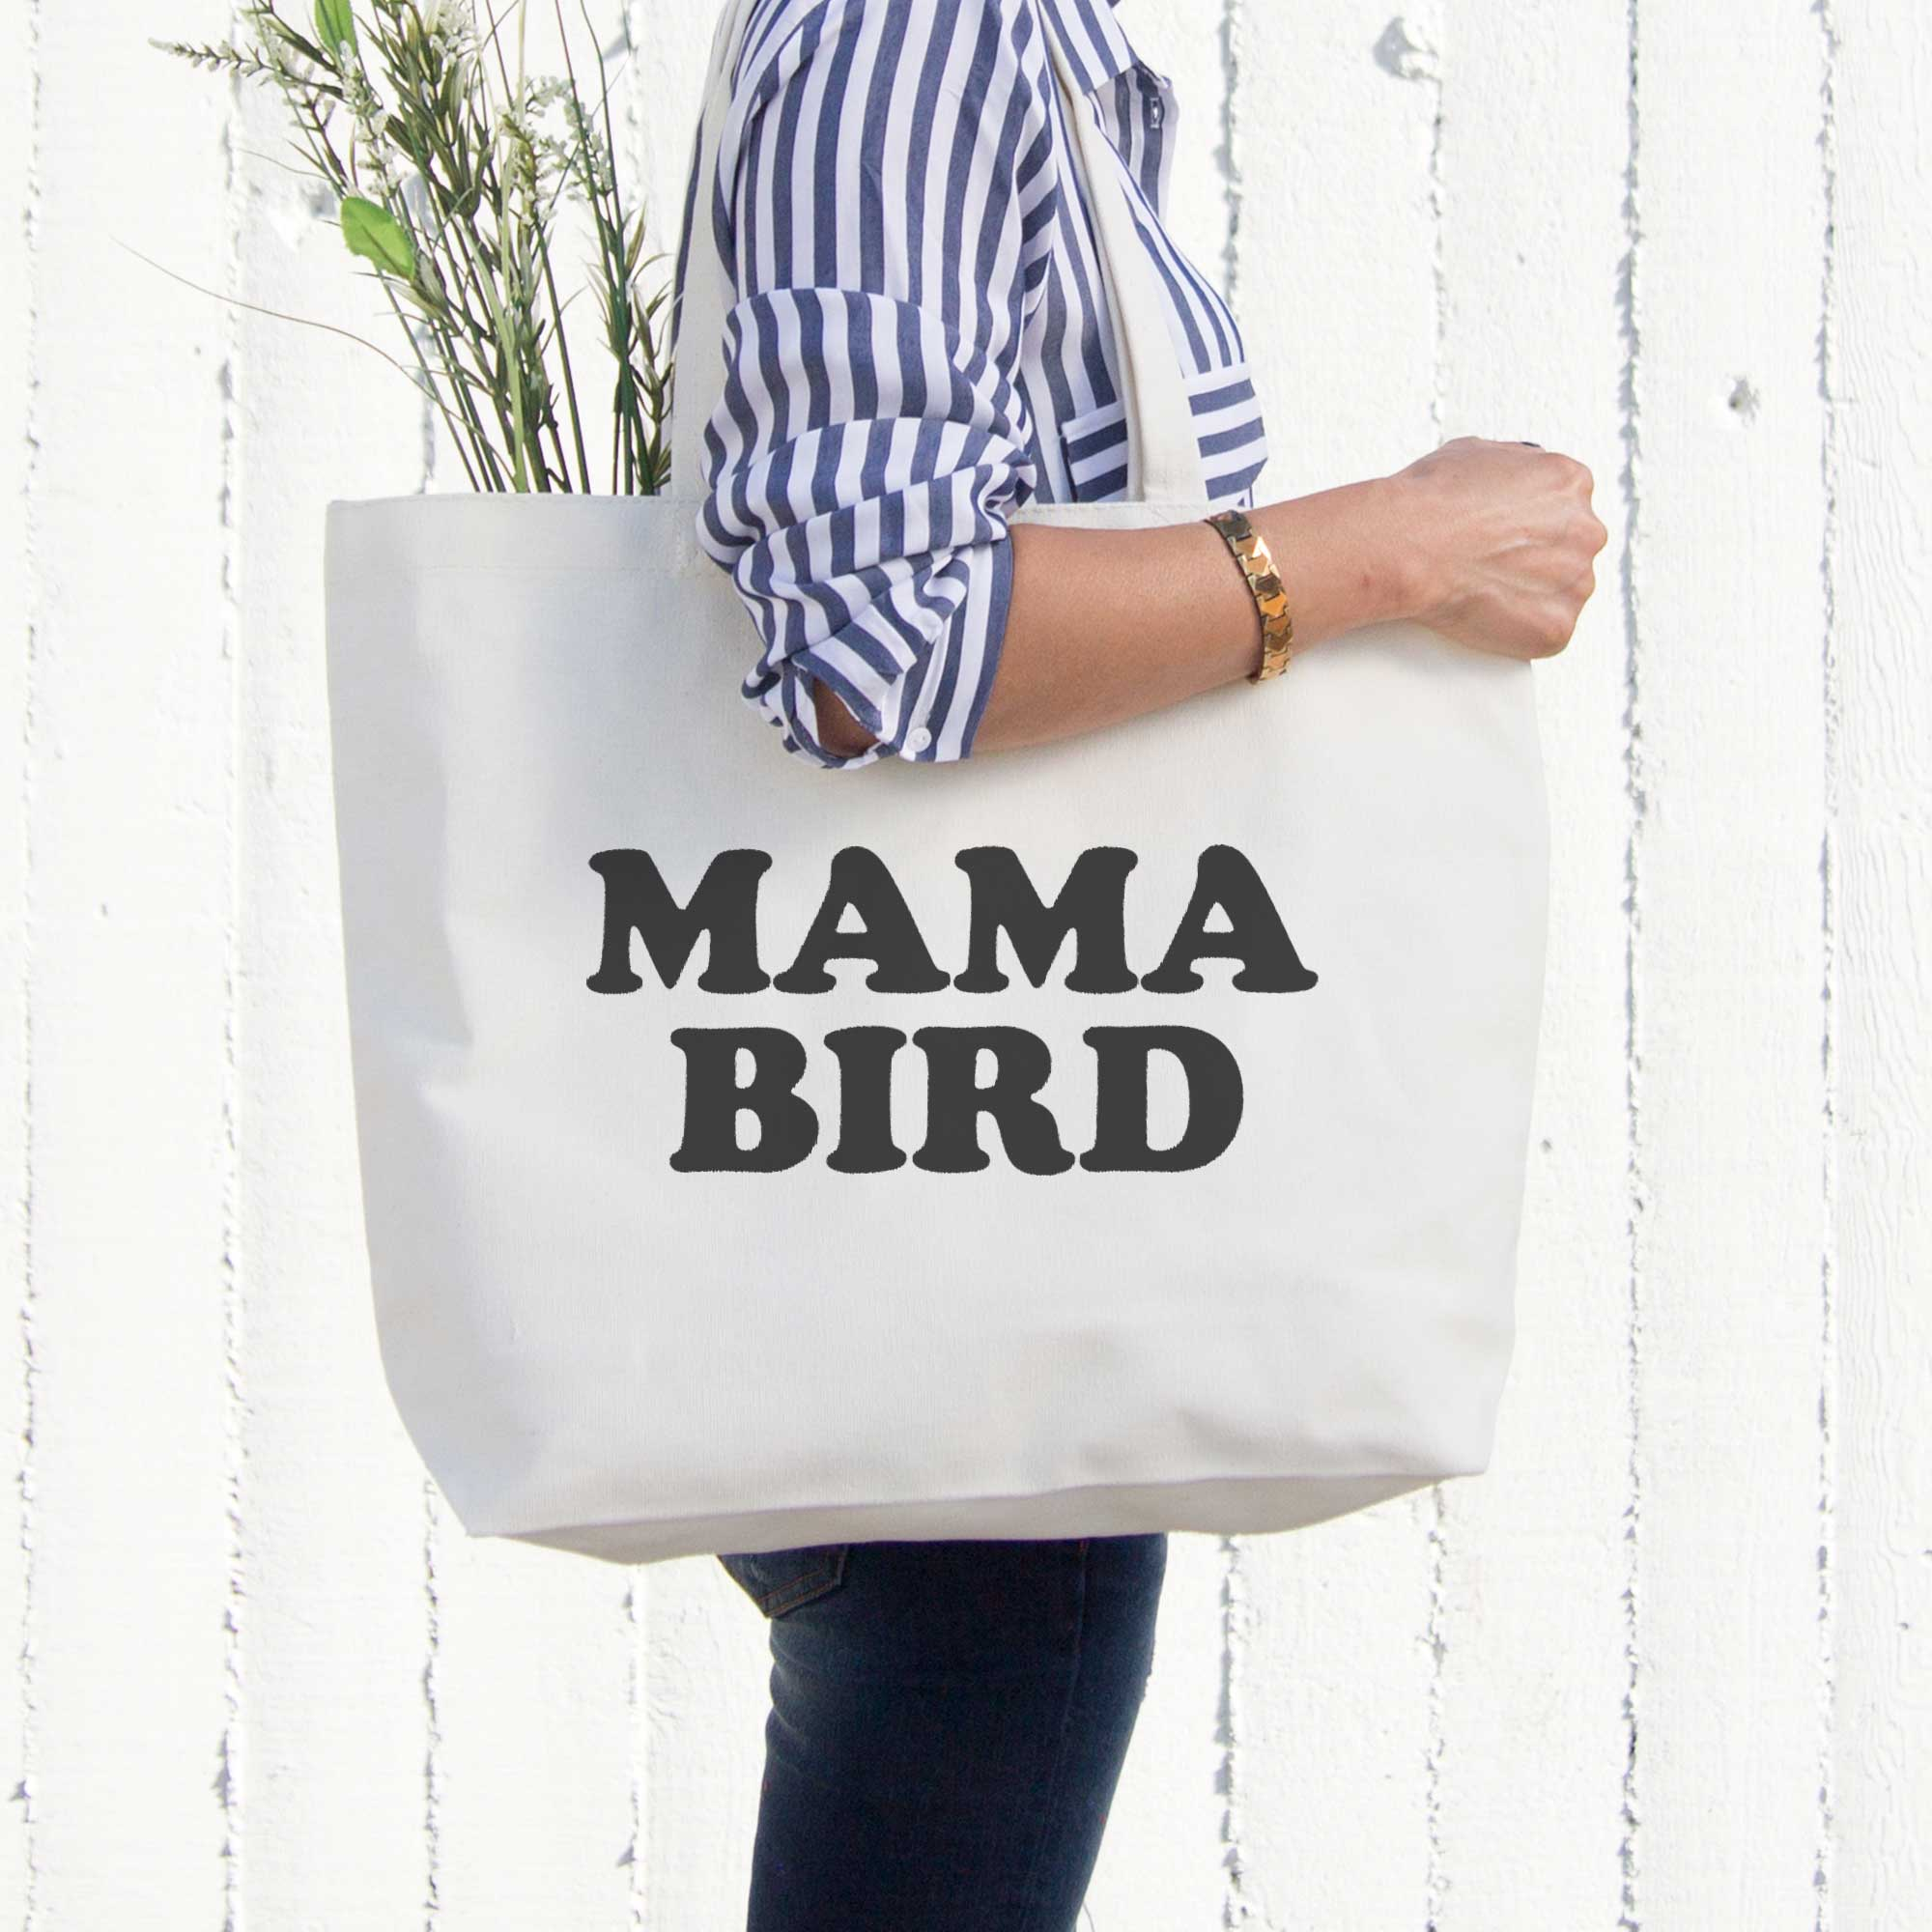 Mama Bird Canvas Bag Grocery Diaper Book Bags Gifts For Mom Mothers Day Gift